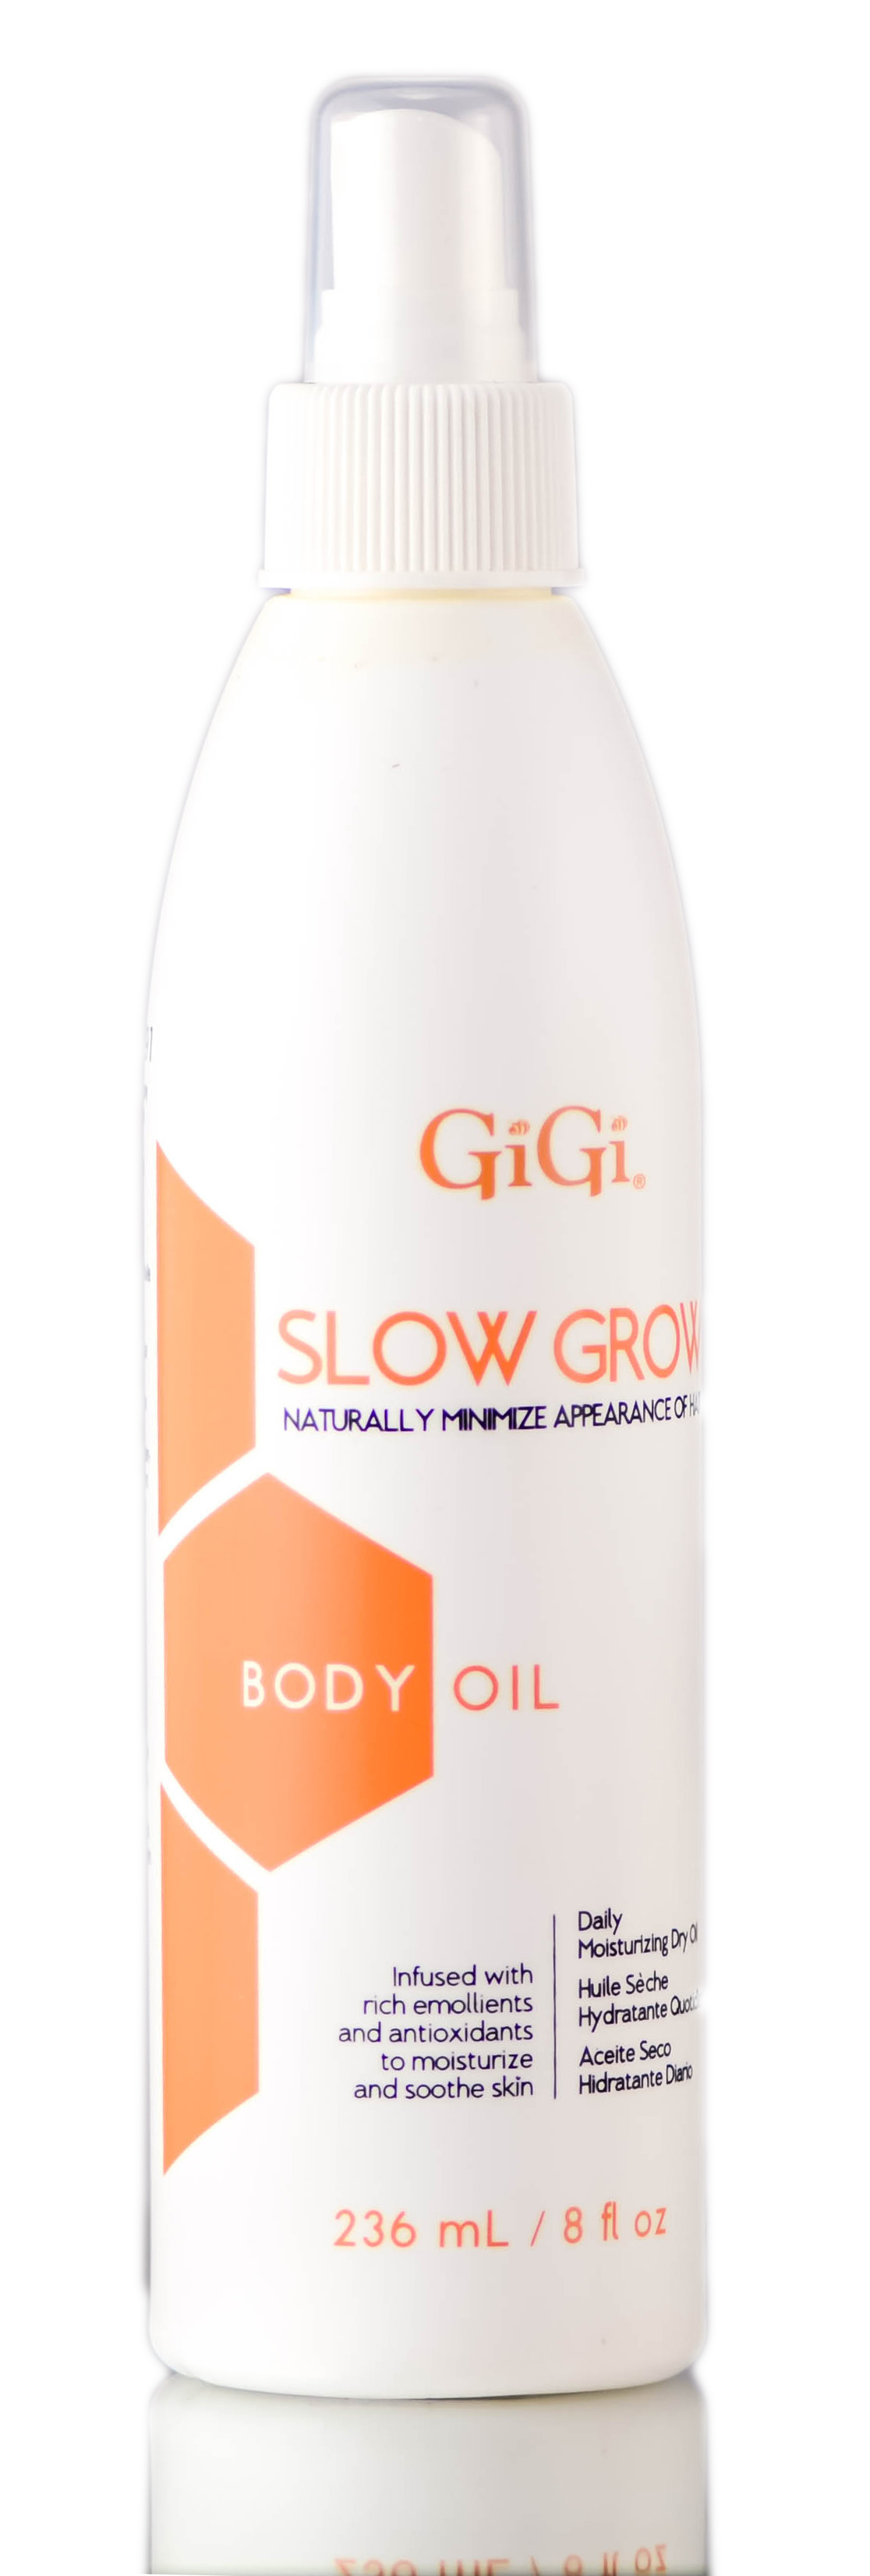 Gigi Slow Grow Body Oil 073930073802